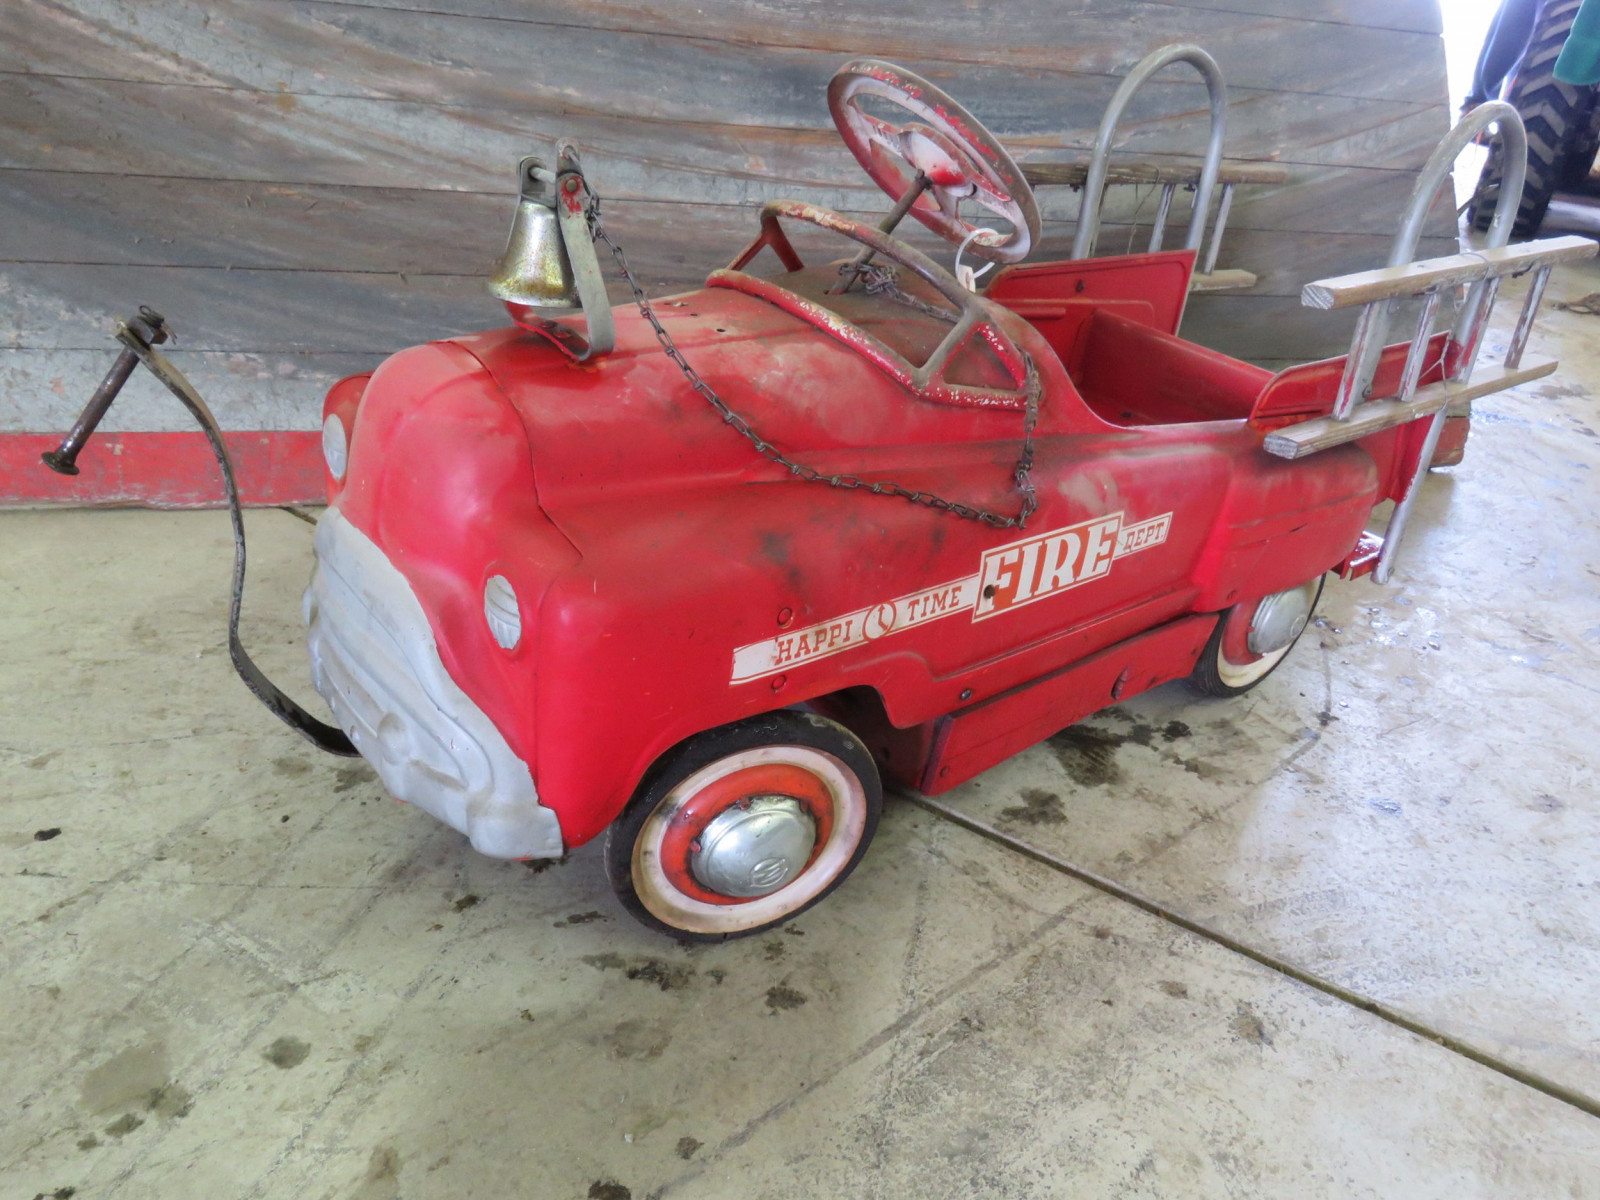 Murray Happy Time Fire Department Pedal Car - Image 1